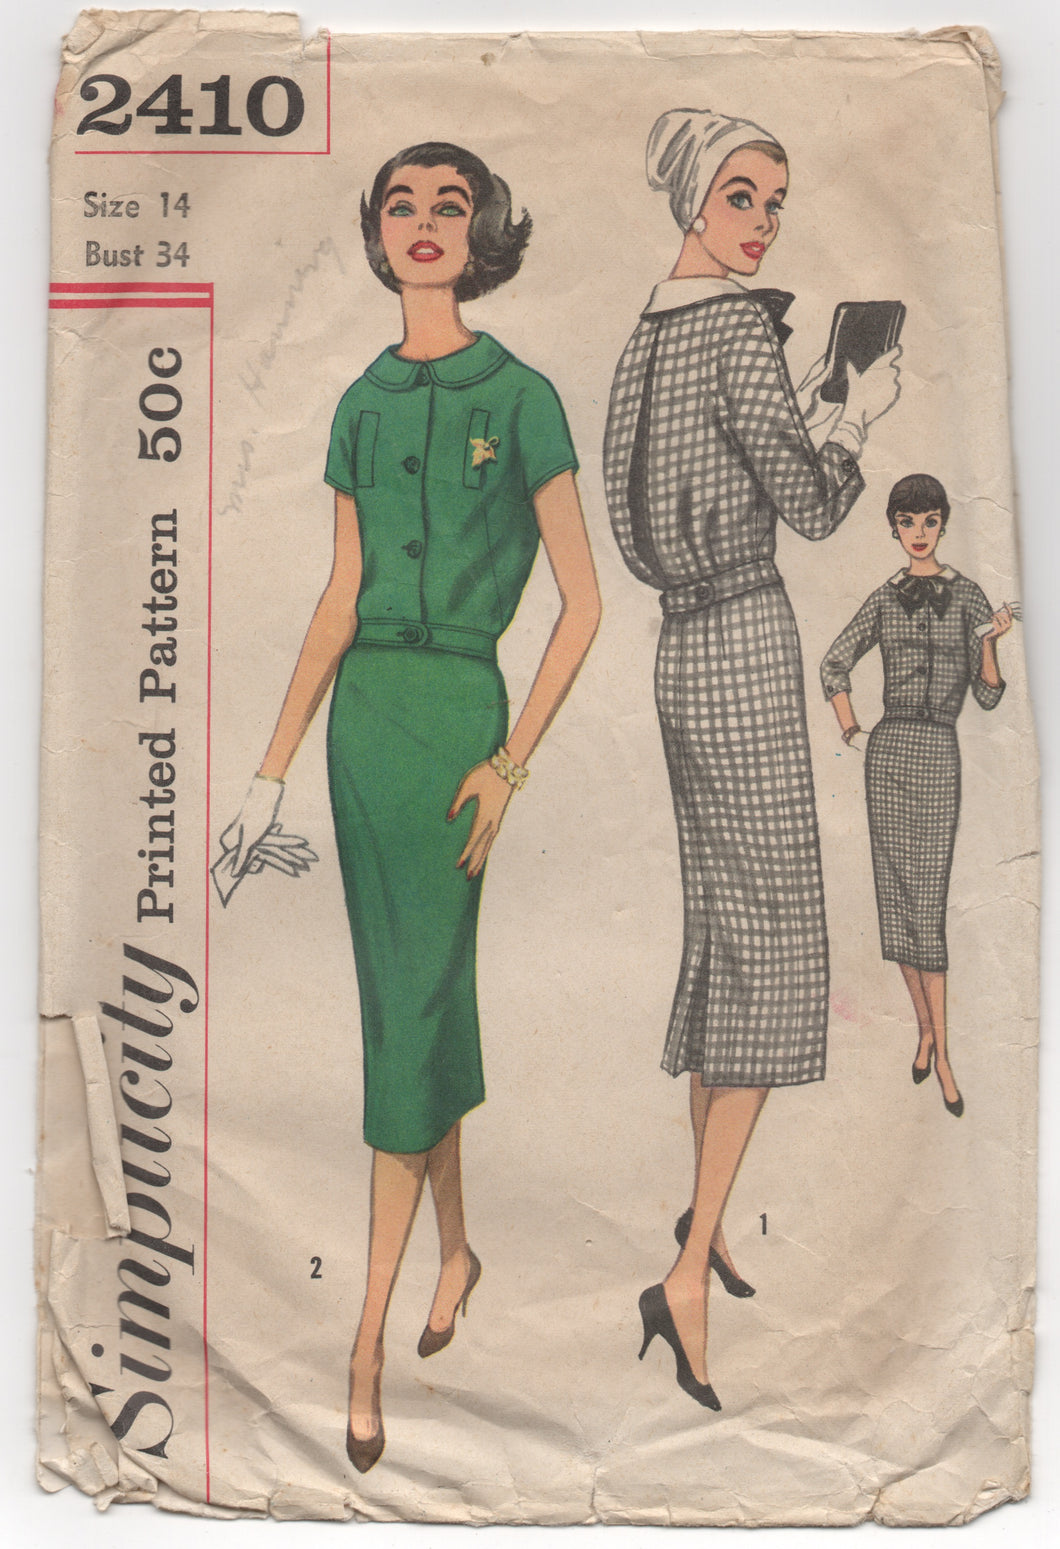 1950's Simplicity Two Piece Dress with Slim Skirt and Detachable Collar and Bow - Bust 34